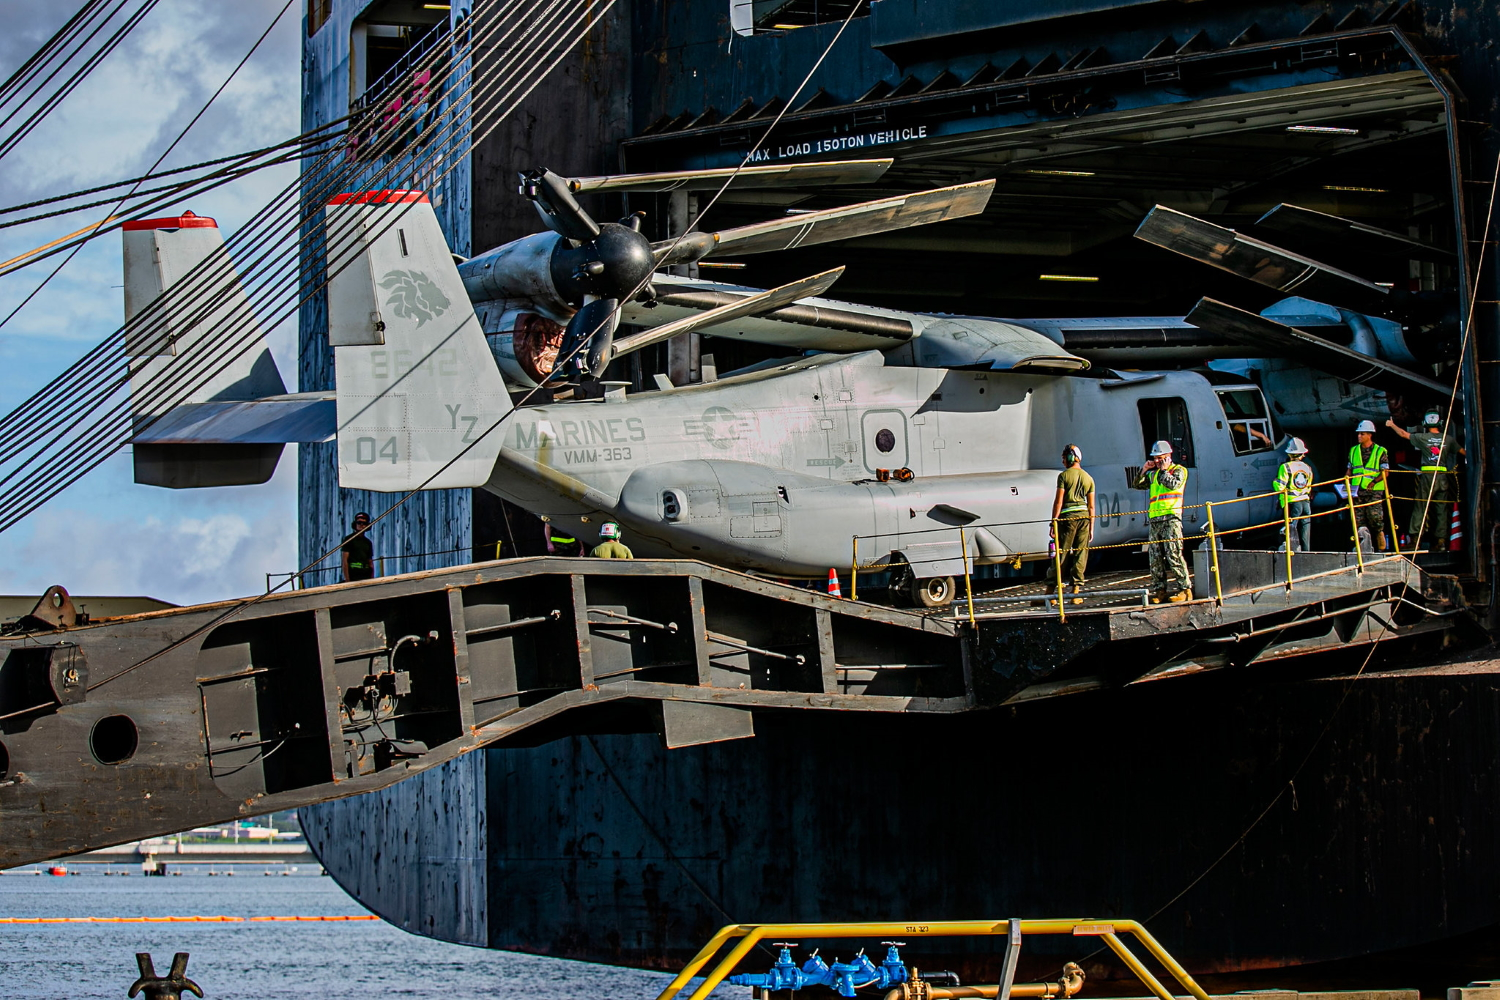 Marines offload an MV-22 Osprey from a vehicle carrier vessel on Joint Base Pearl Habor-Hickam, Hawaii, on Oct. 4, 2019, following a six-month deployment as part of Marine Rotational Force-Darwin. (Lance Cpl. Jacob Wilson/Marine Corps)